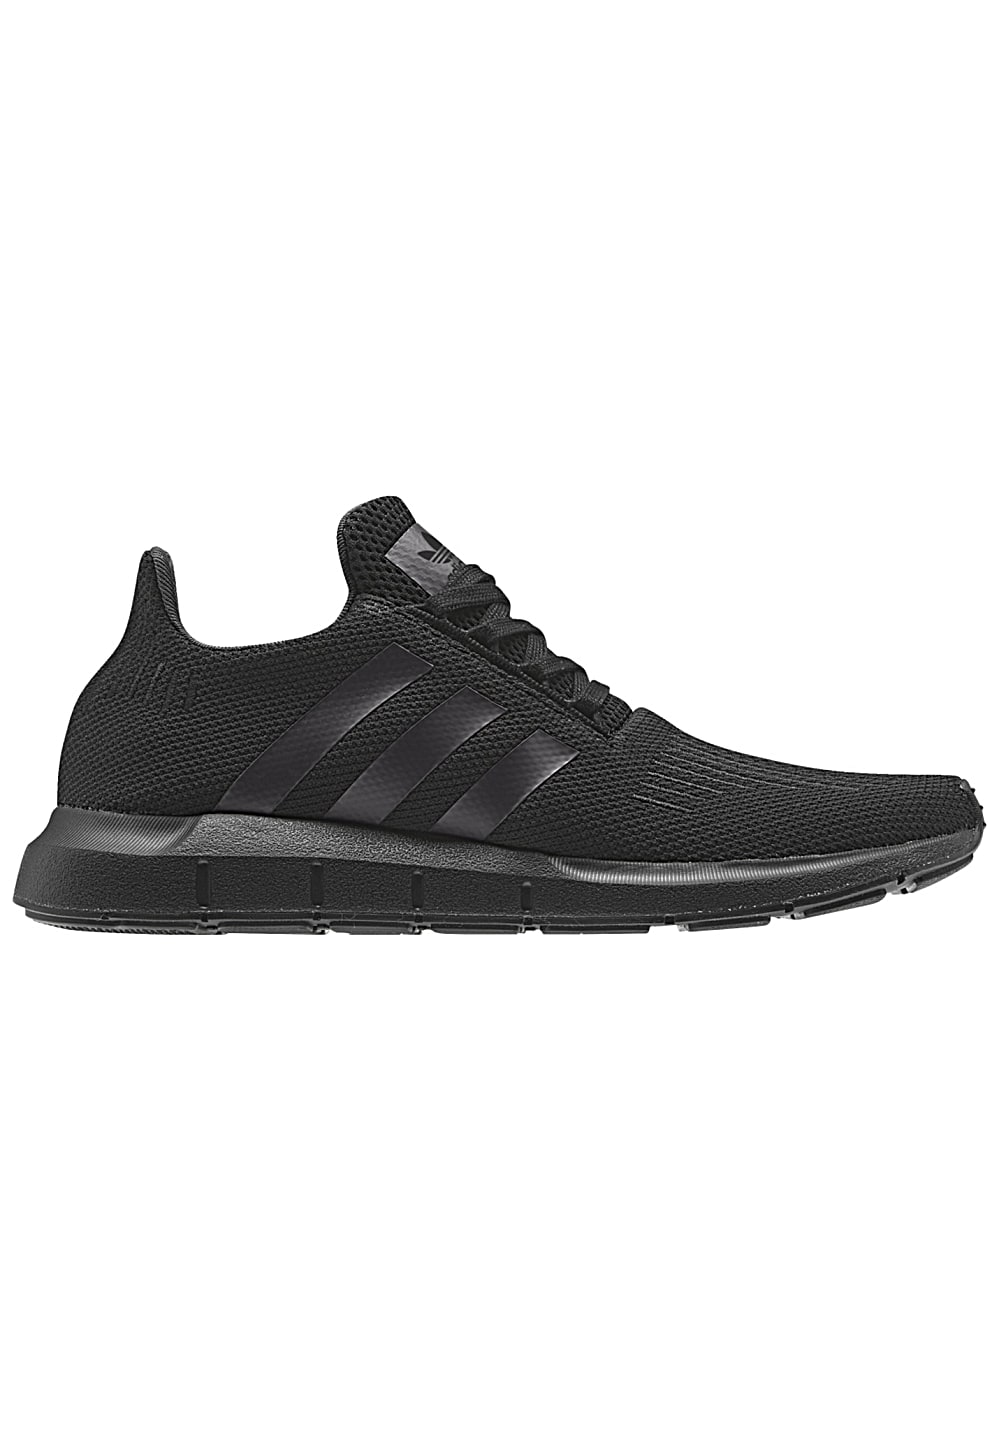 adidas Originals Swift Run - Sneaker für Herren - Schwarz ...